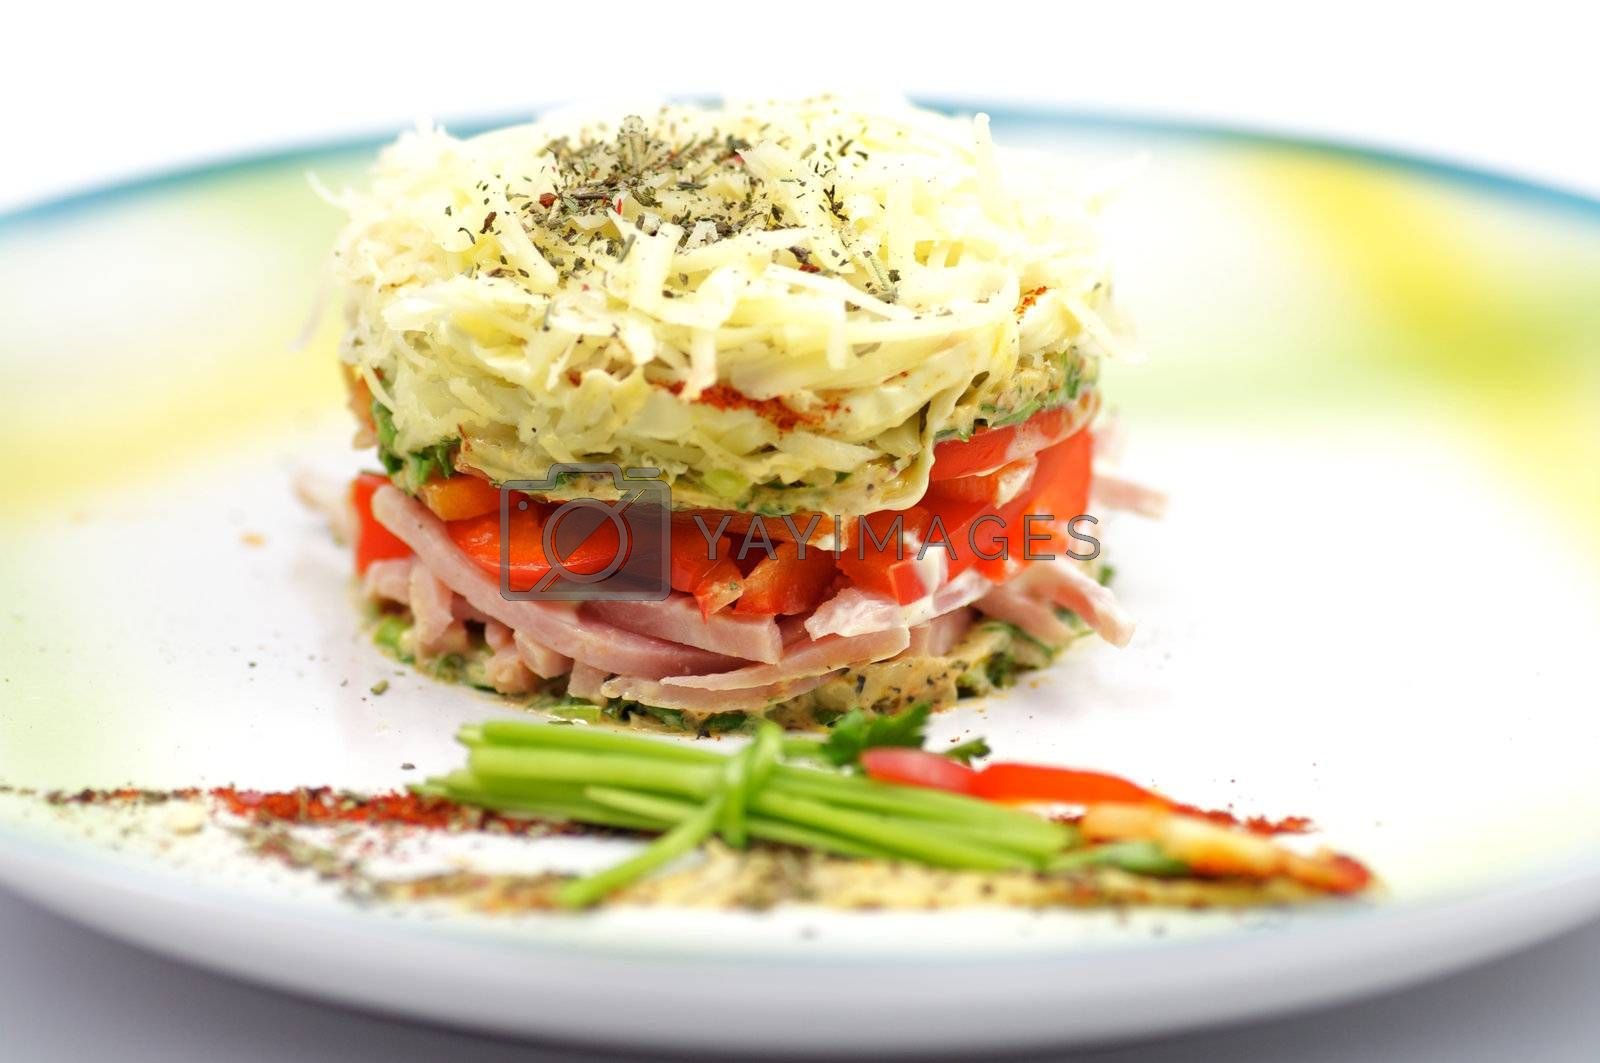 Cheese salad with red bell pepper, greens, bacon and spices